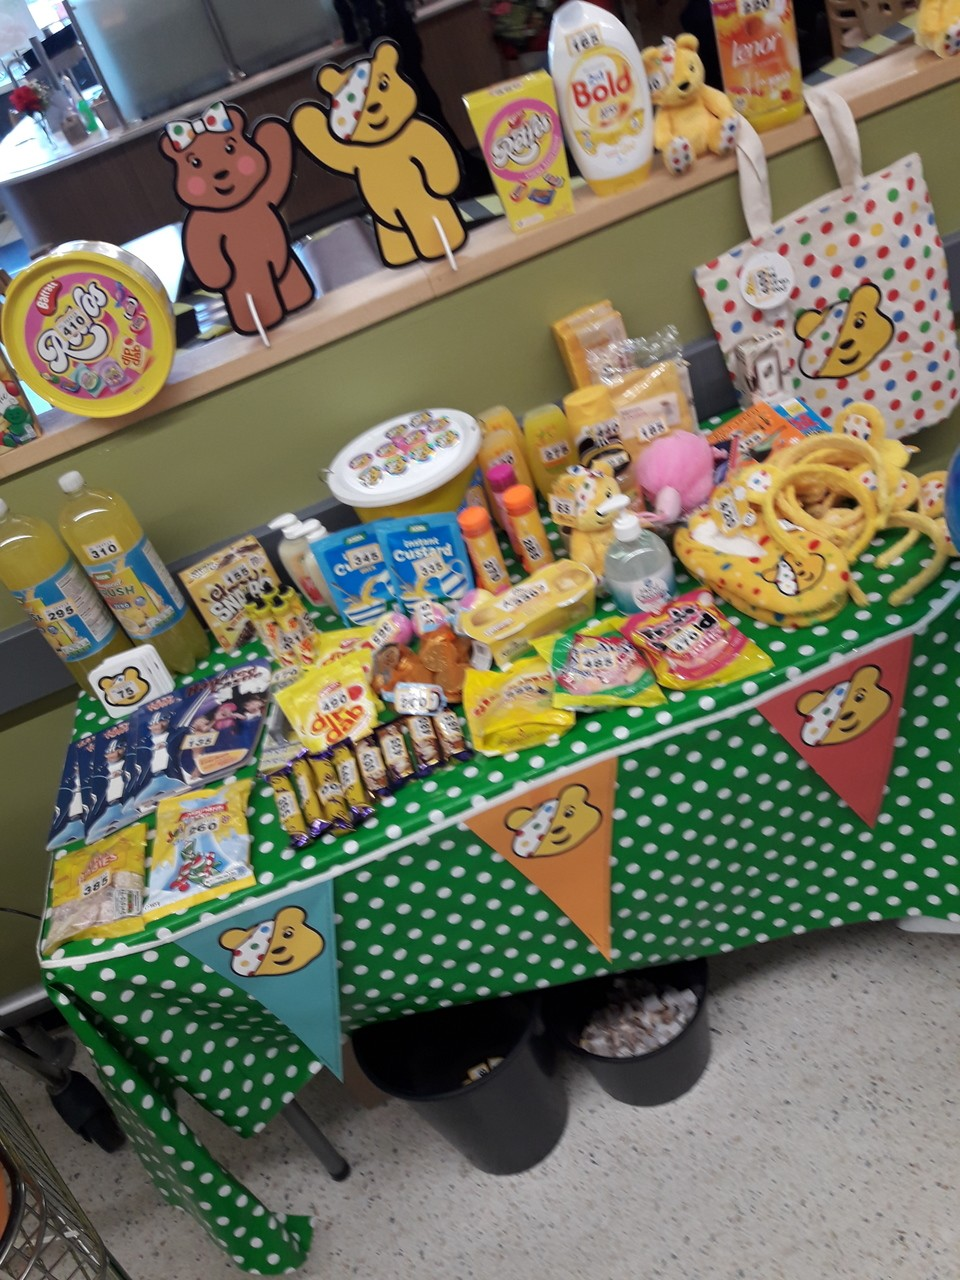 Children In NeedSocial distance tombola in Asda Llandudno today to raise funds for Children In Need | Asda Llandudno